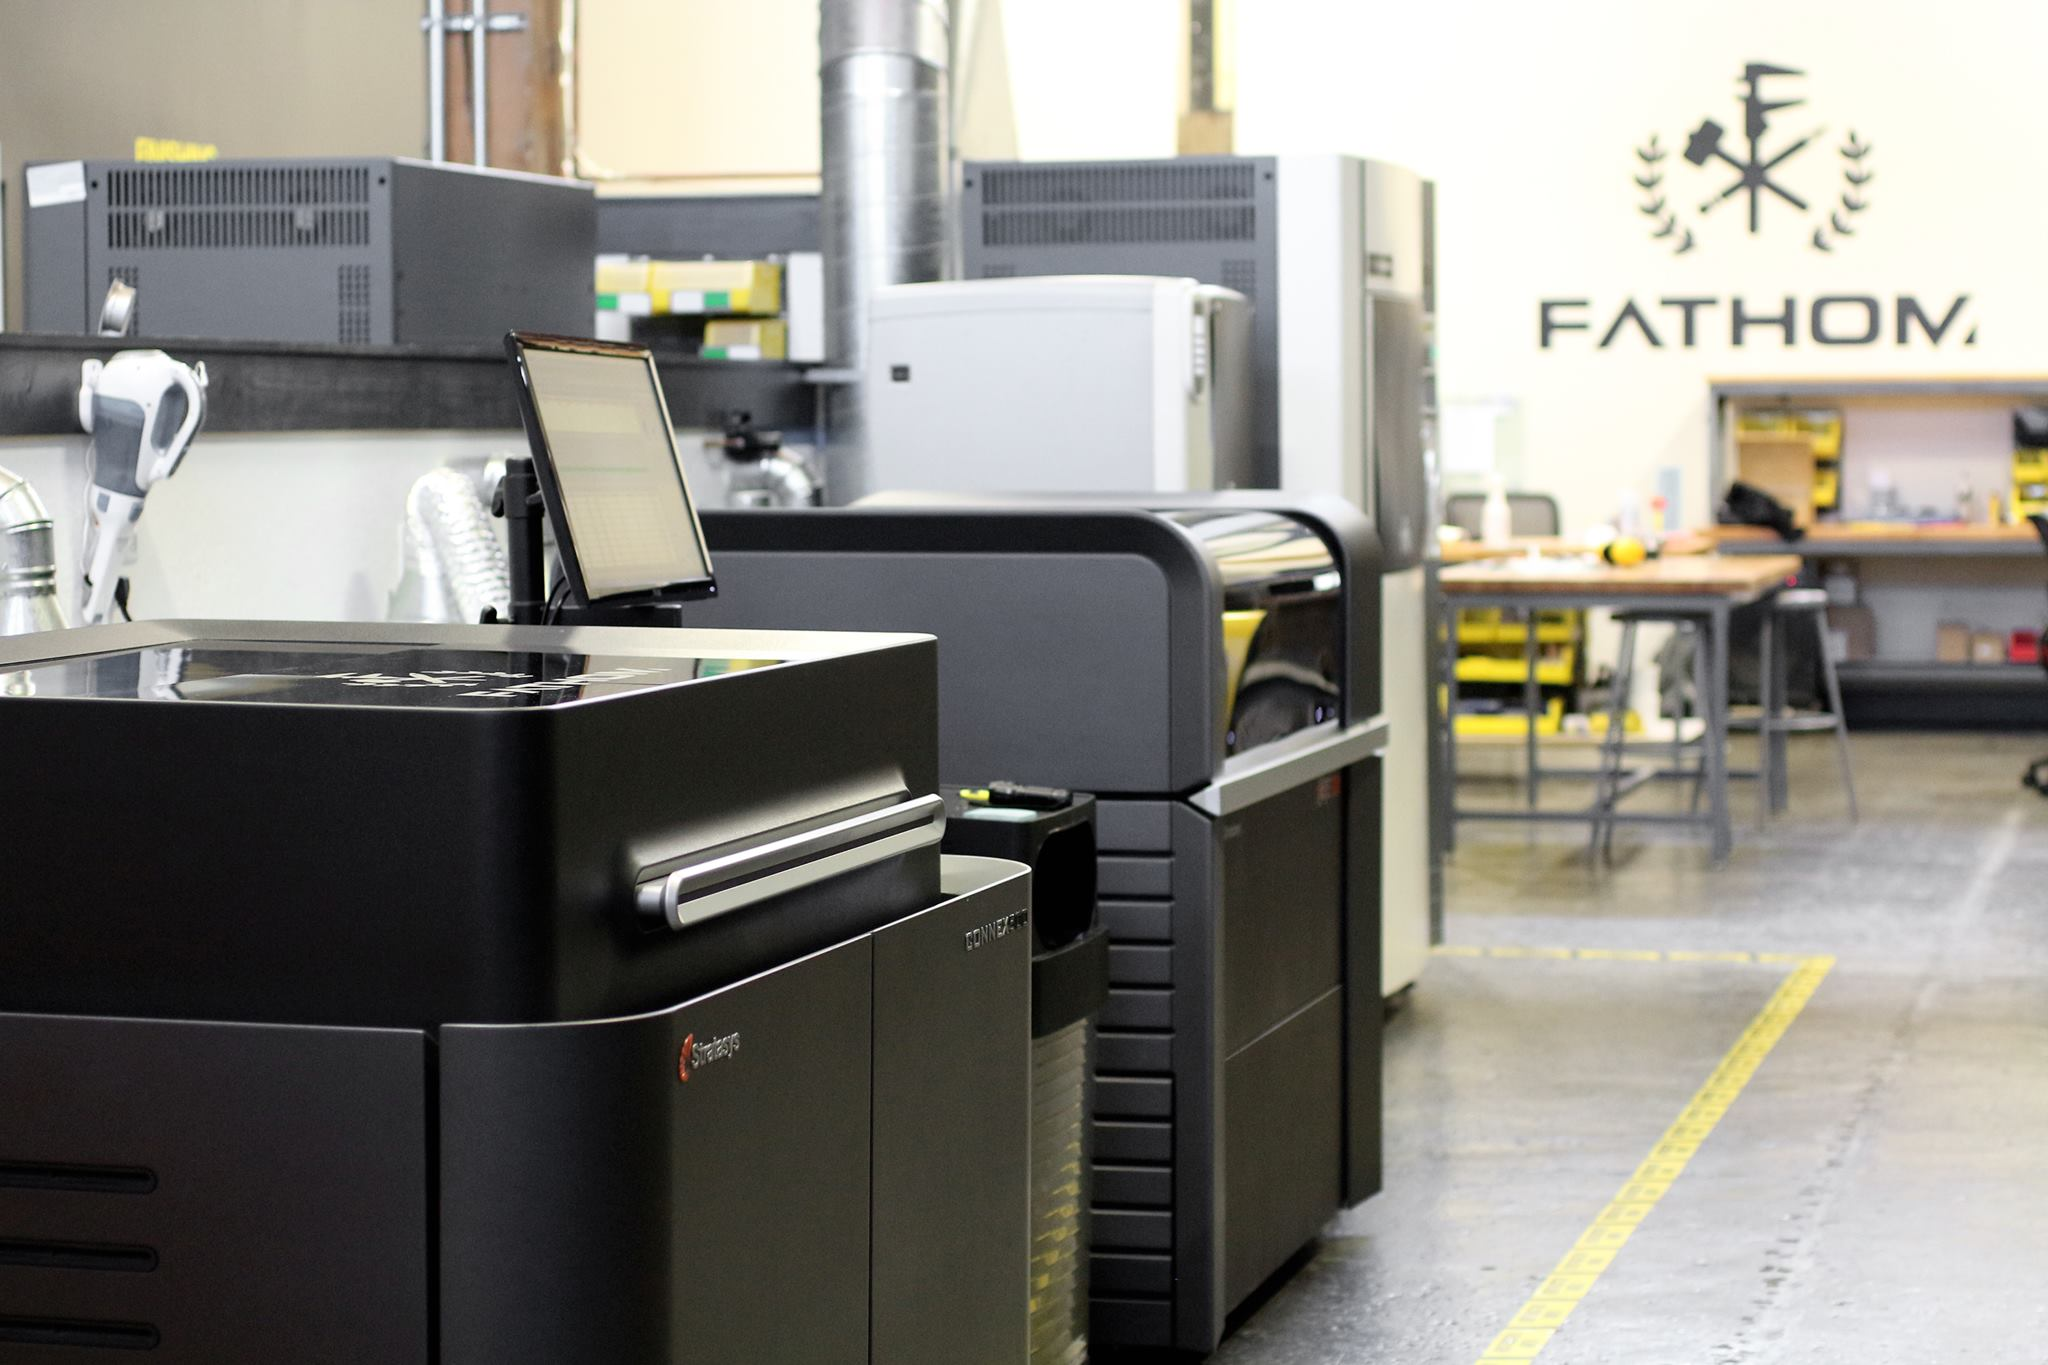 A selection of 3D printers in FATHOM's expansive technology offering. Photo via FATHOM.